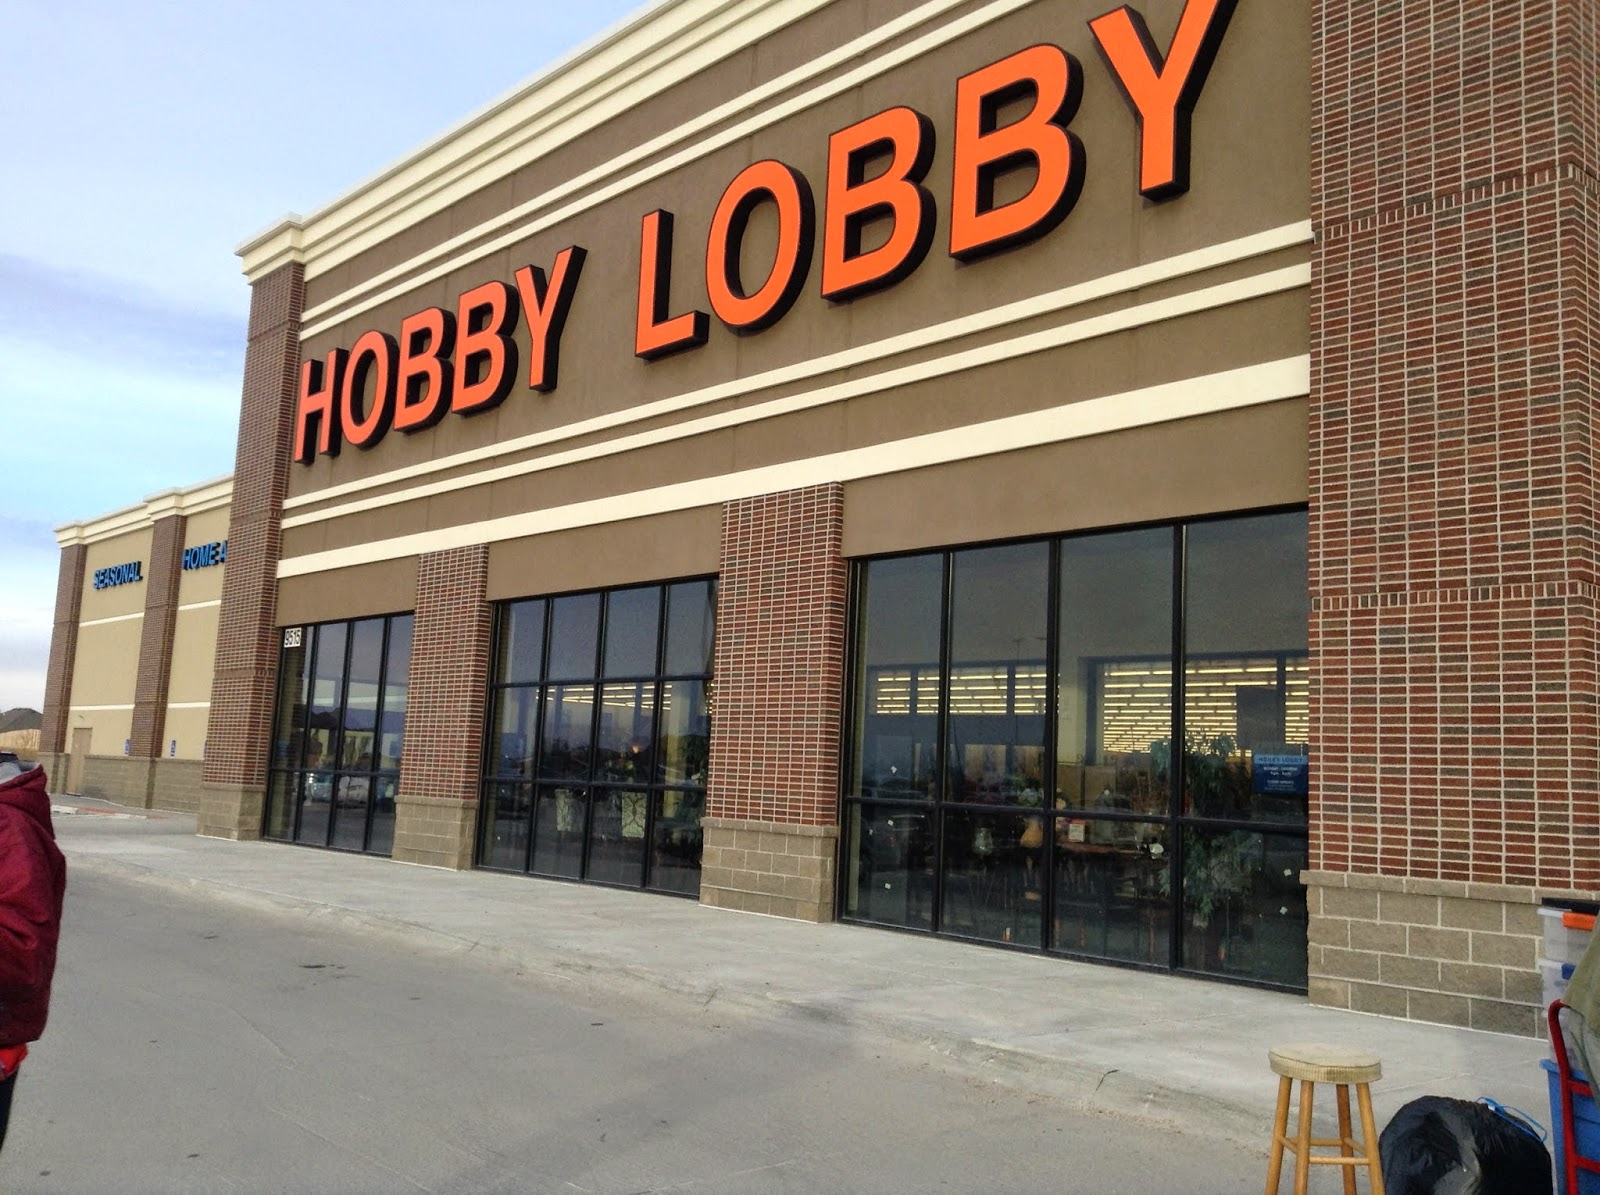 Hobby Lobby. 0 Reviews Dodge St Omaha Come visit us at our store conveniently located at Dodge St, Omaha, NE or shop with us anytime at fihideqavicah.gq, and always be inspired to Live a Creative Life! Information. CONTACT INFORMATION. Phone: Category: Housewares,Home & Office.